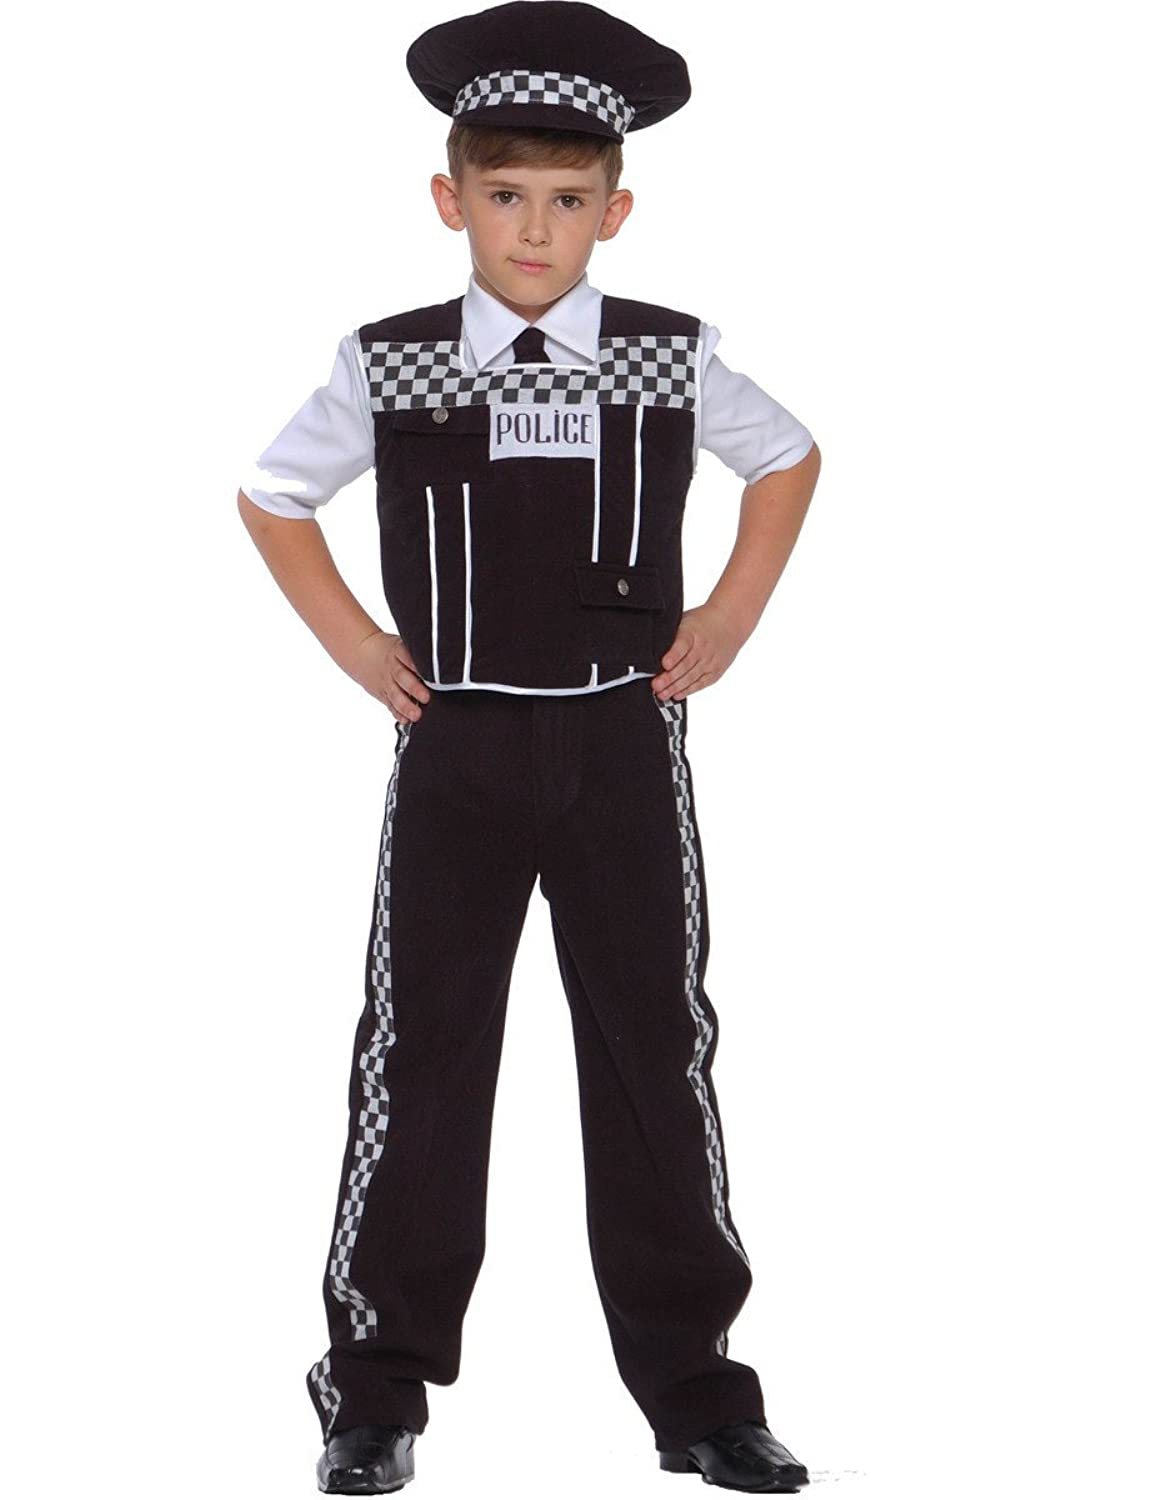 dress up america deluxe police dress up costume set includes